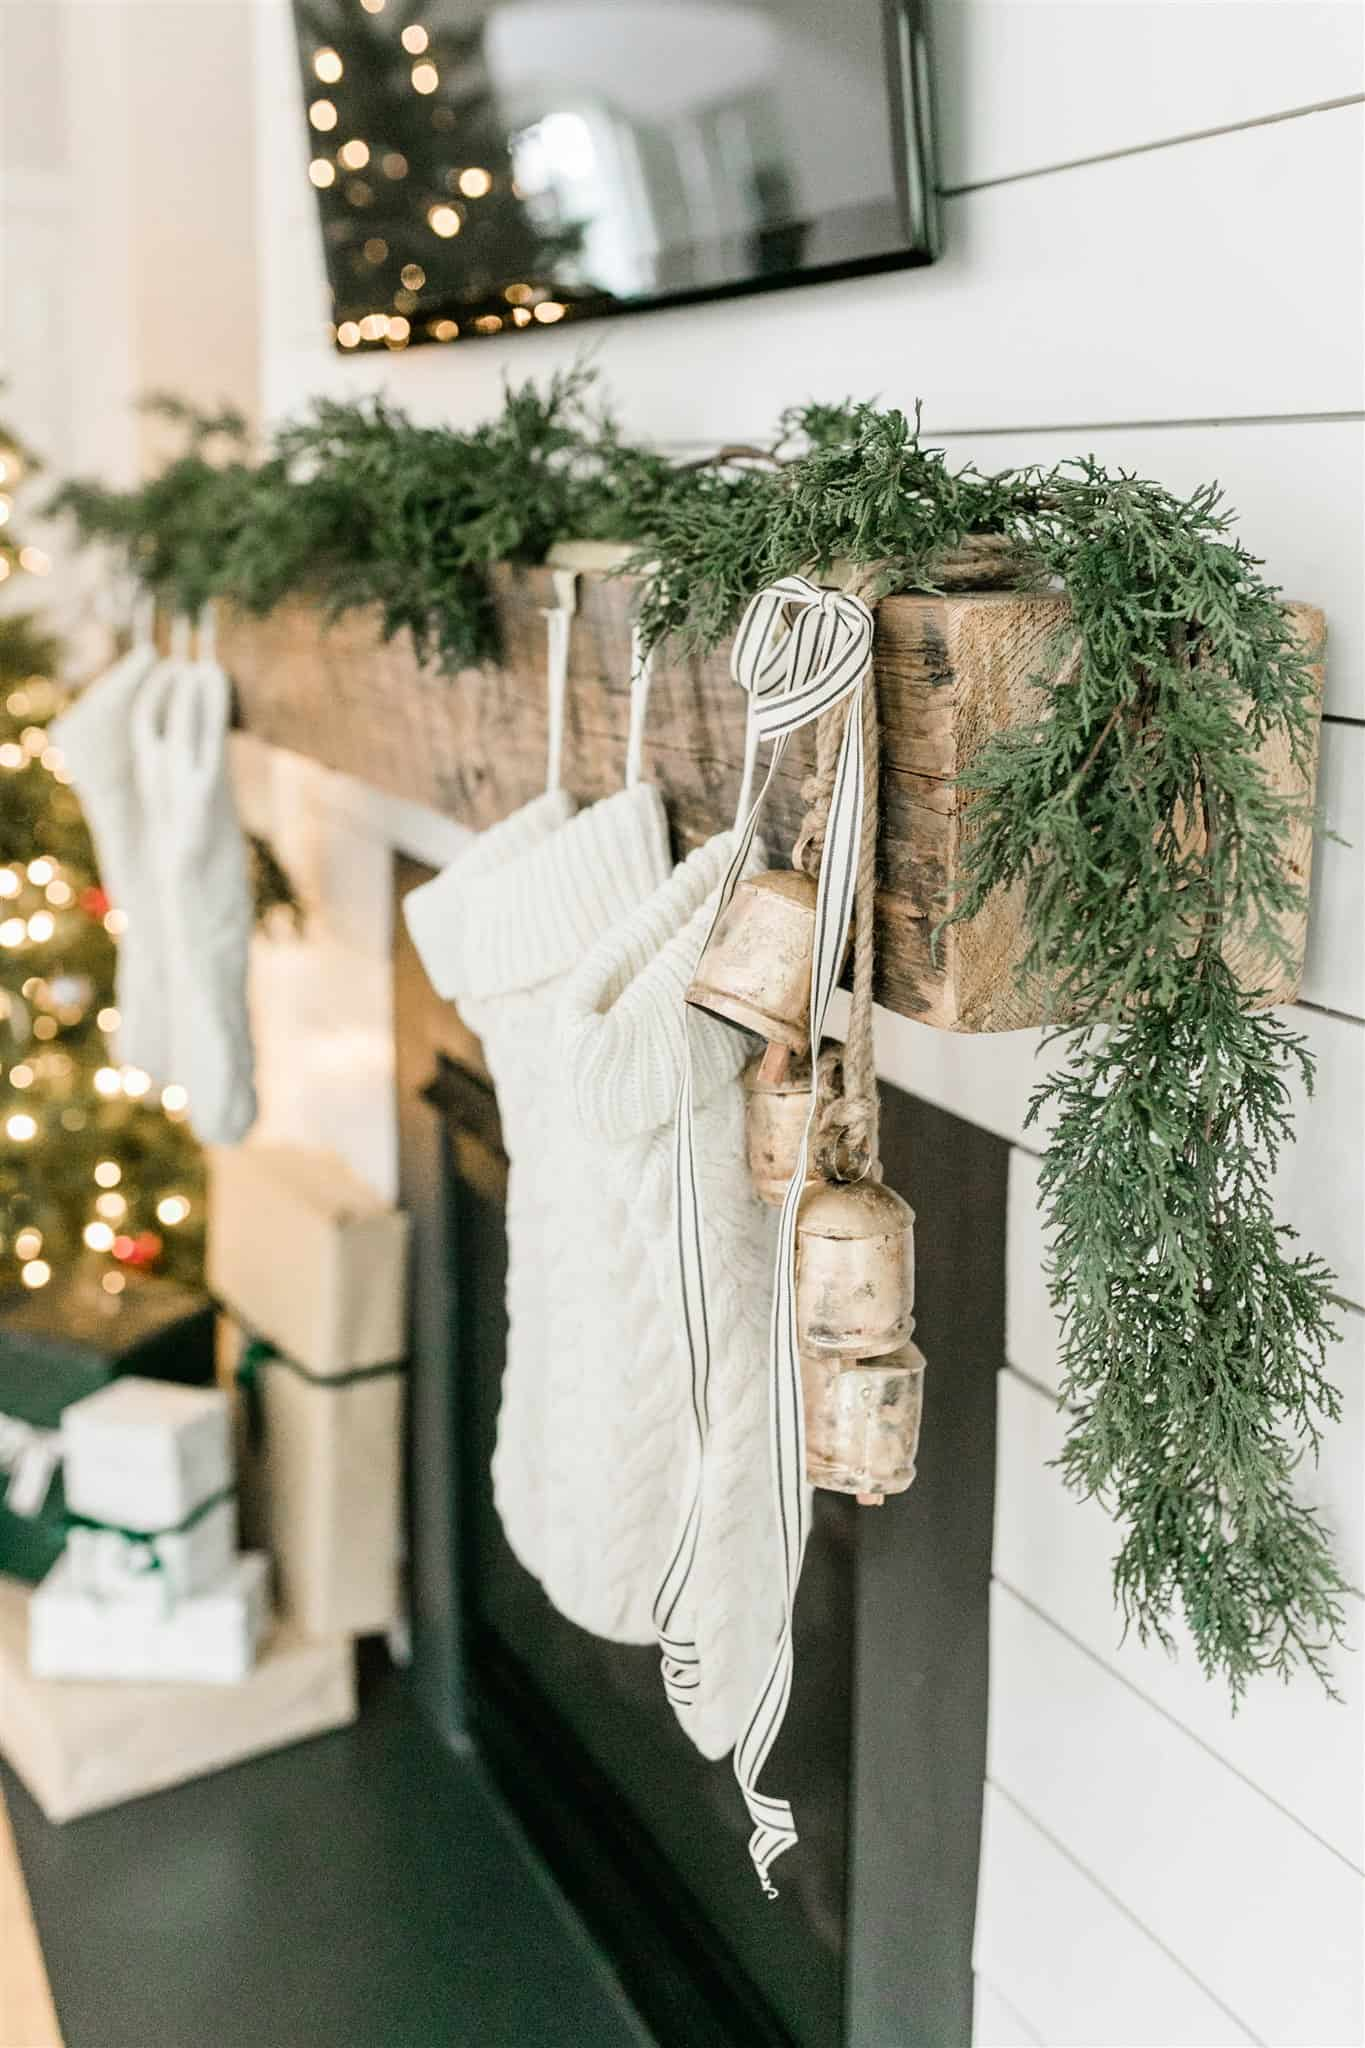 Beautiful neutral stockings, including linen stockings, white knit stockings, fuzzy stockings, and velvet stockings.  Stockings under $30 and Christmas stockings for every budget.  #amazonhome #christmasstockings #whitestockings #knitstockings #velvetstockings #linenstockings #christmasmantel #christmaslivingroom